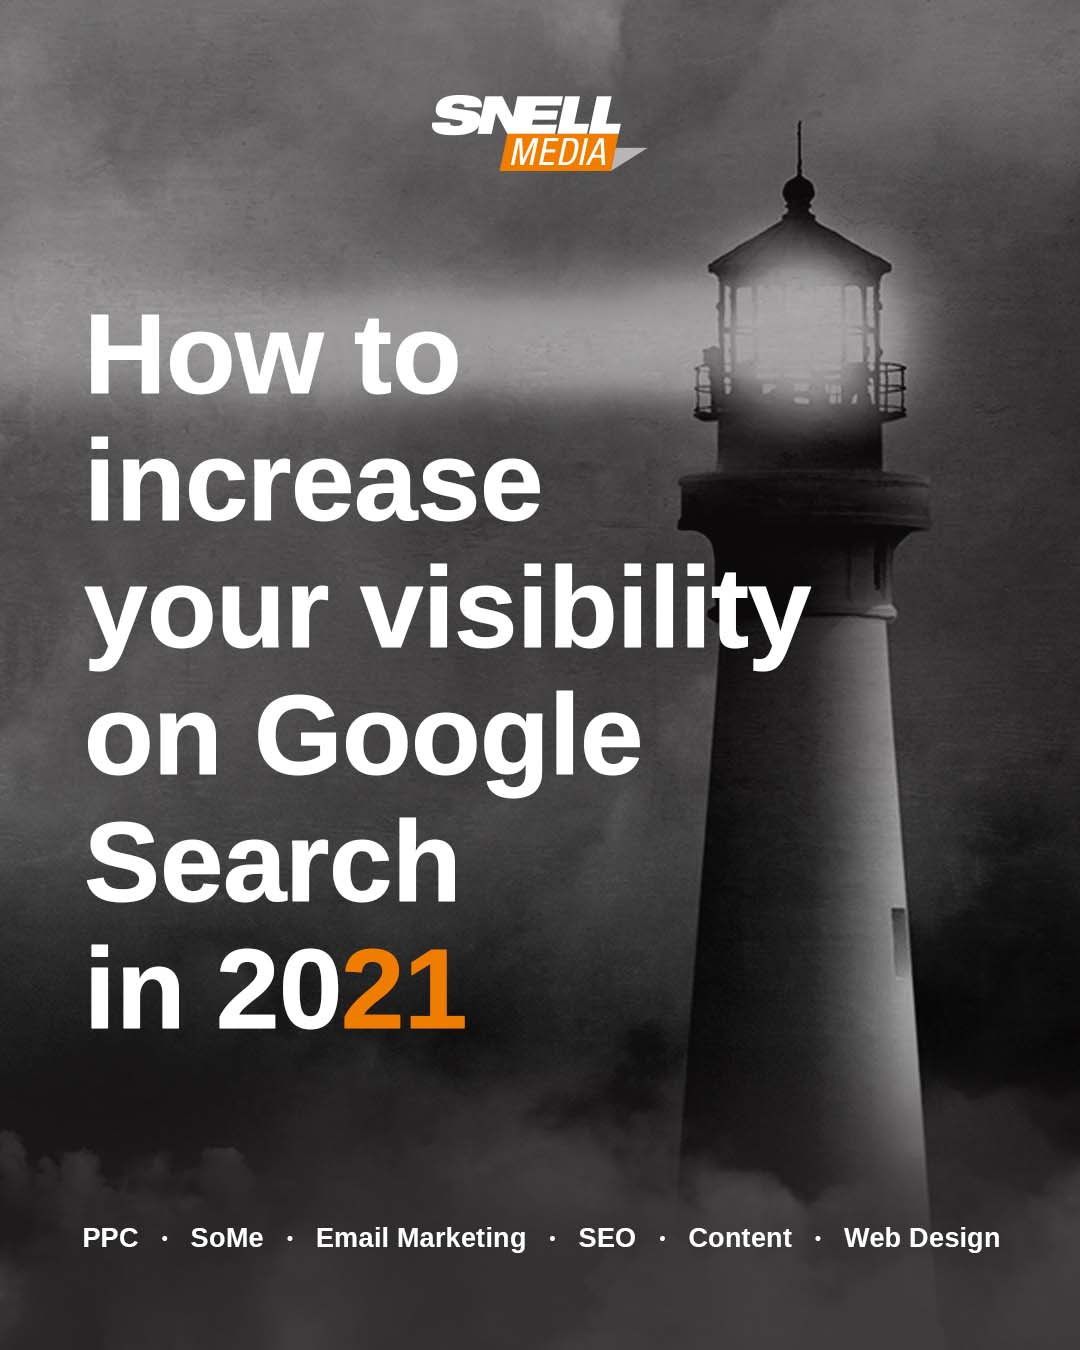 How to increase your visibility on Google Search in 2021